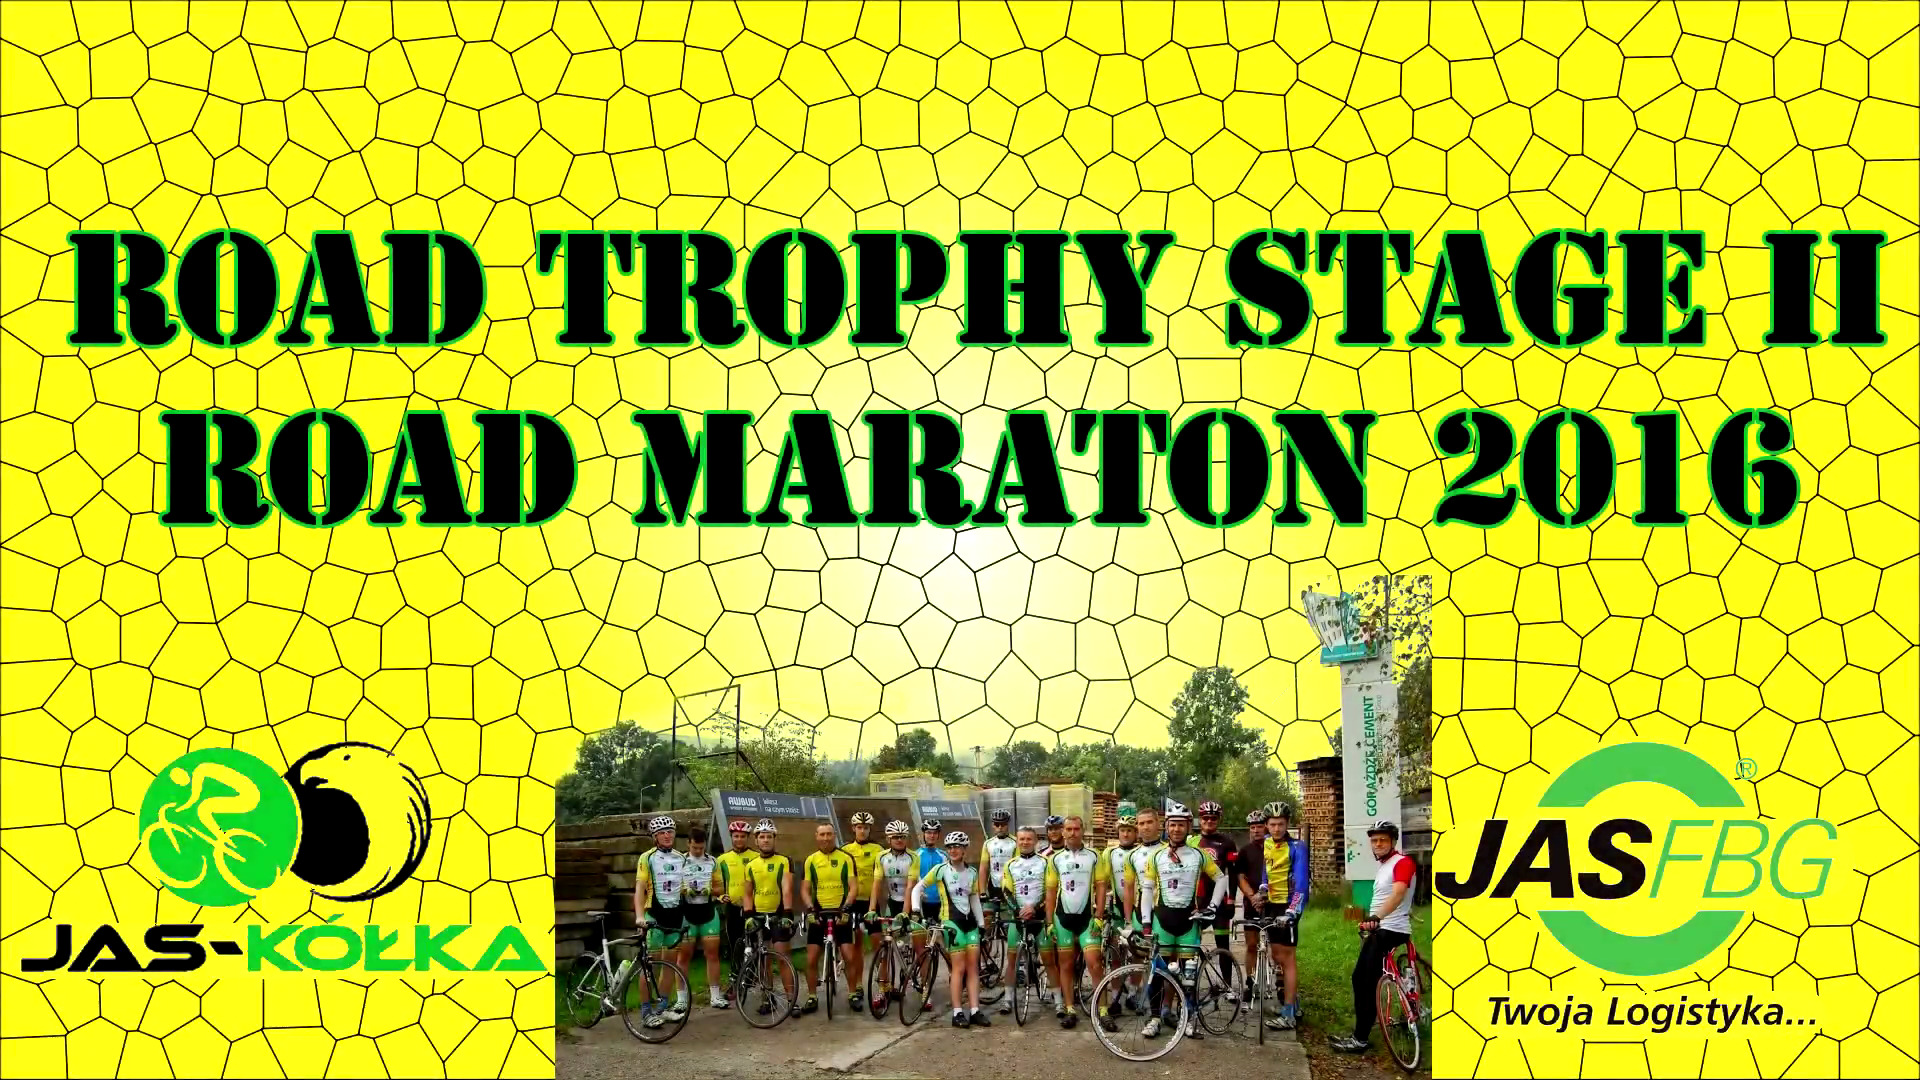 Road Trophy 2016 STAGE II